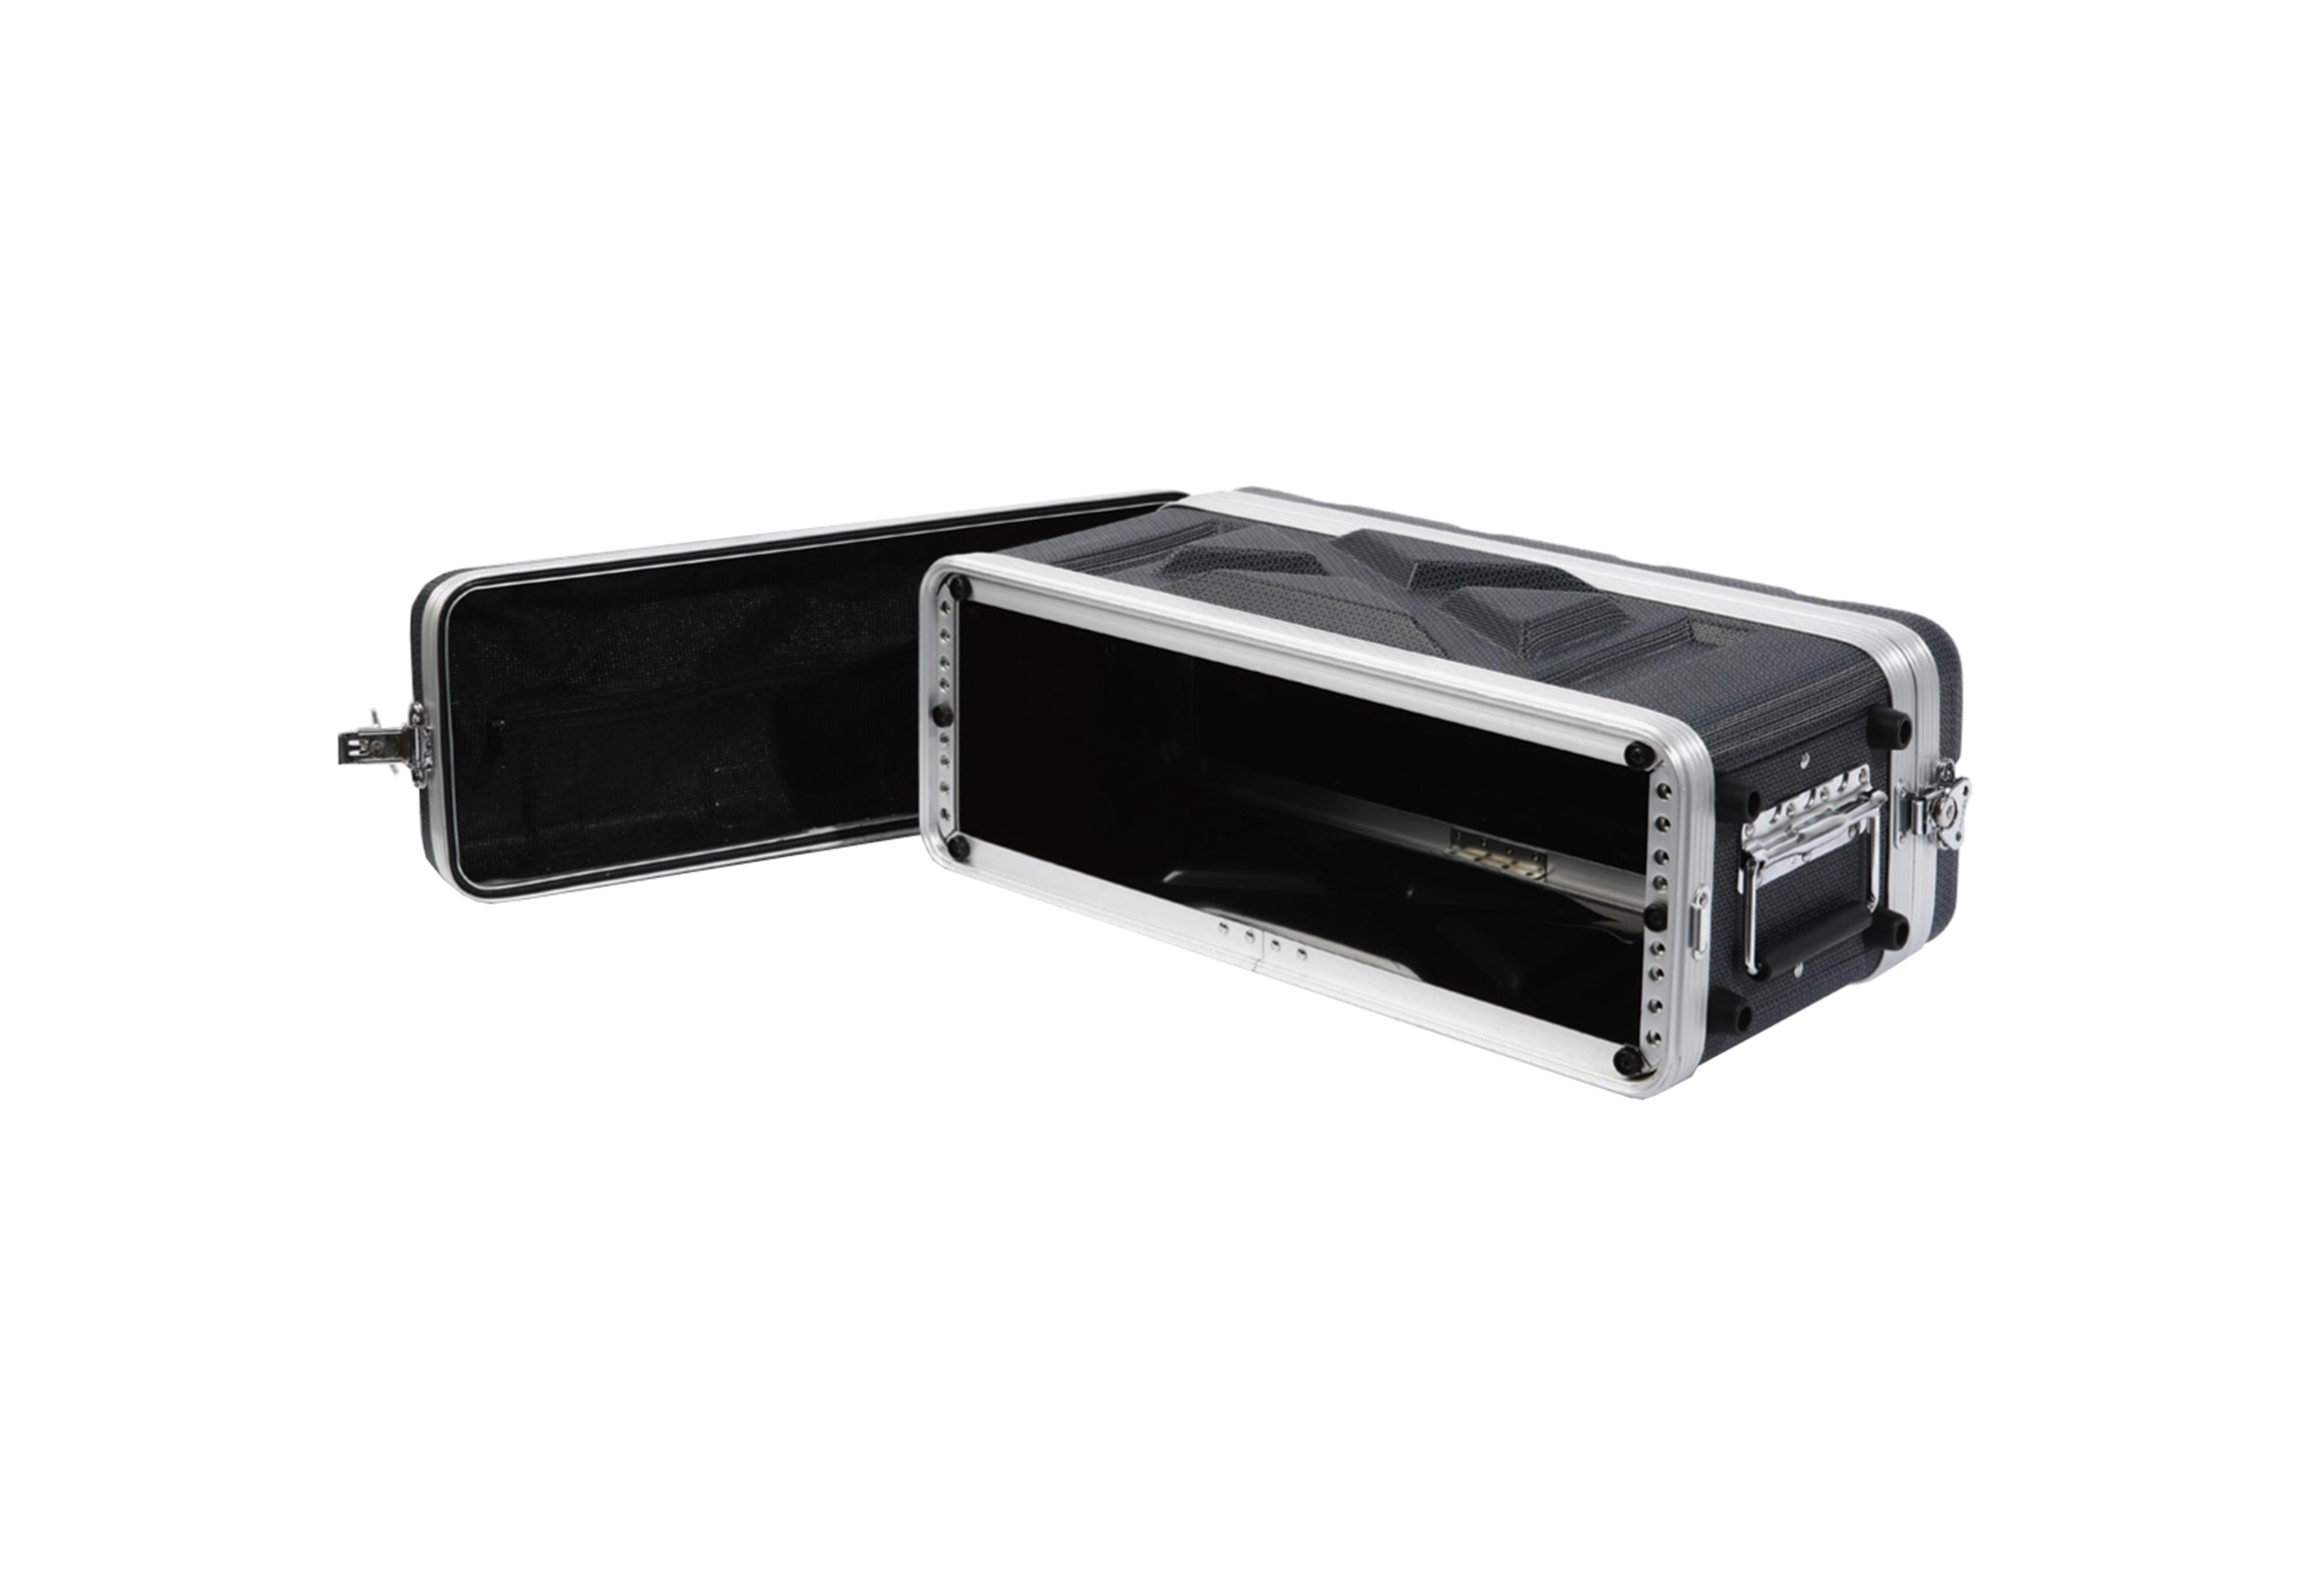 PROEL-FORCE-FOABSR3US-RACK-FLIGHT-CASE-CORTO-IN-ABS-sku-10907